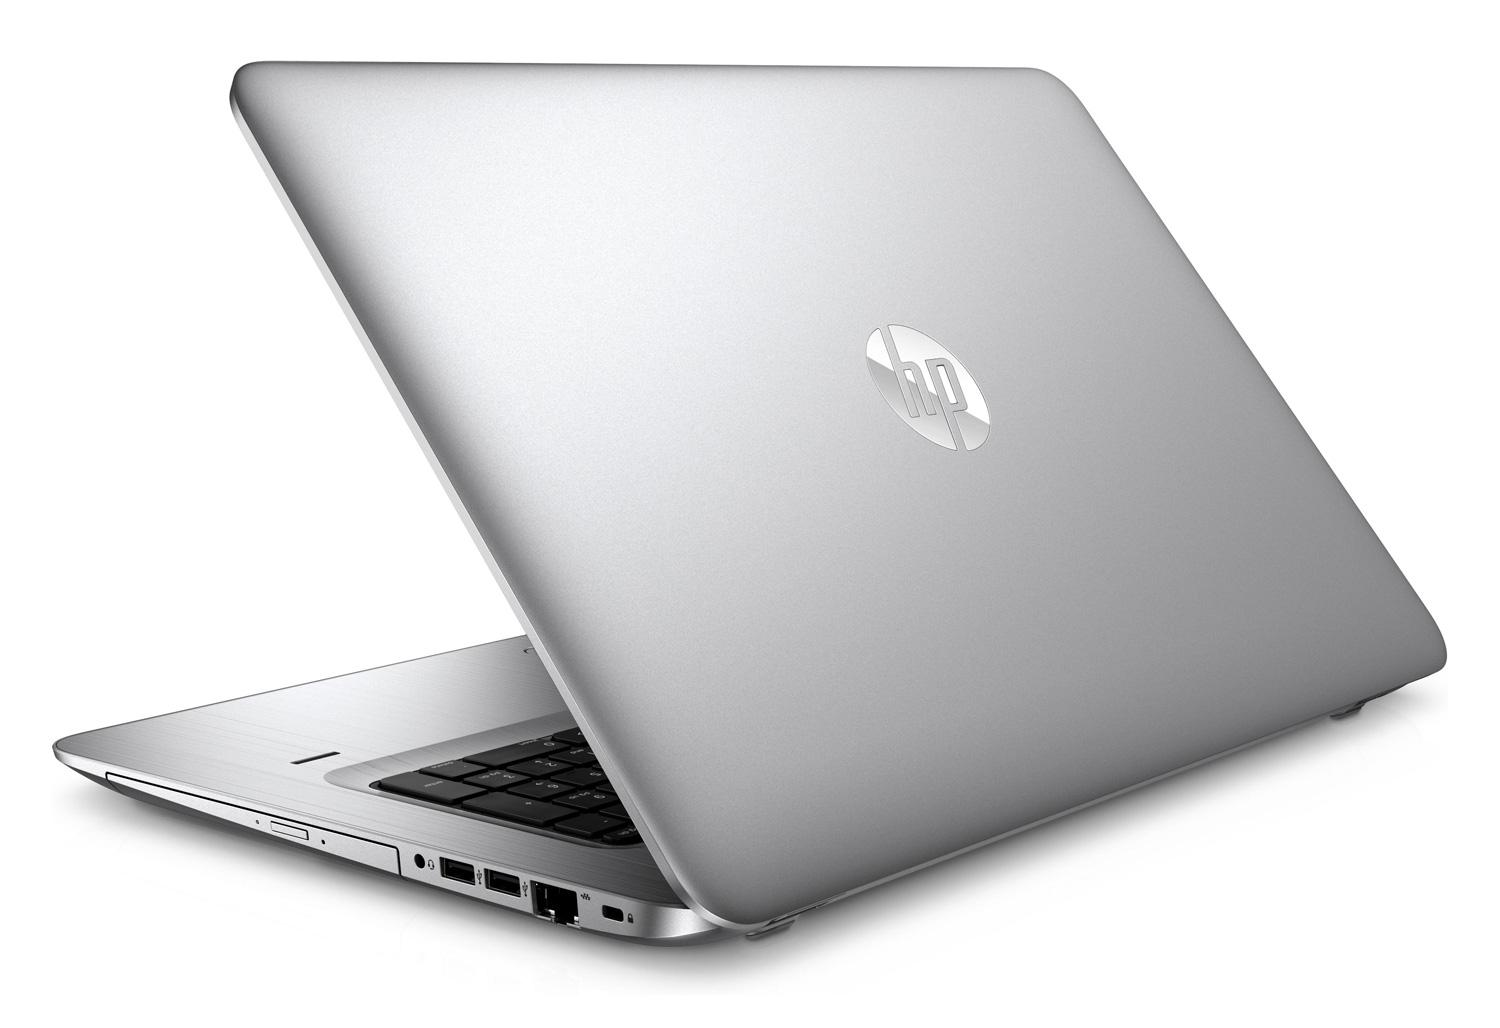 hp probook 470 g4 core i7 les meilleurs prix. Black Bedroom Furniture Sets. Home Design Ideas